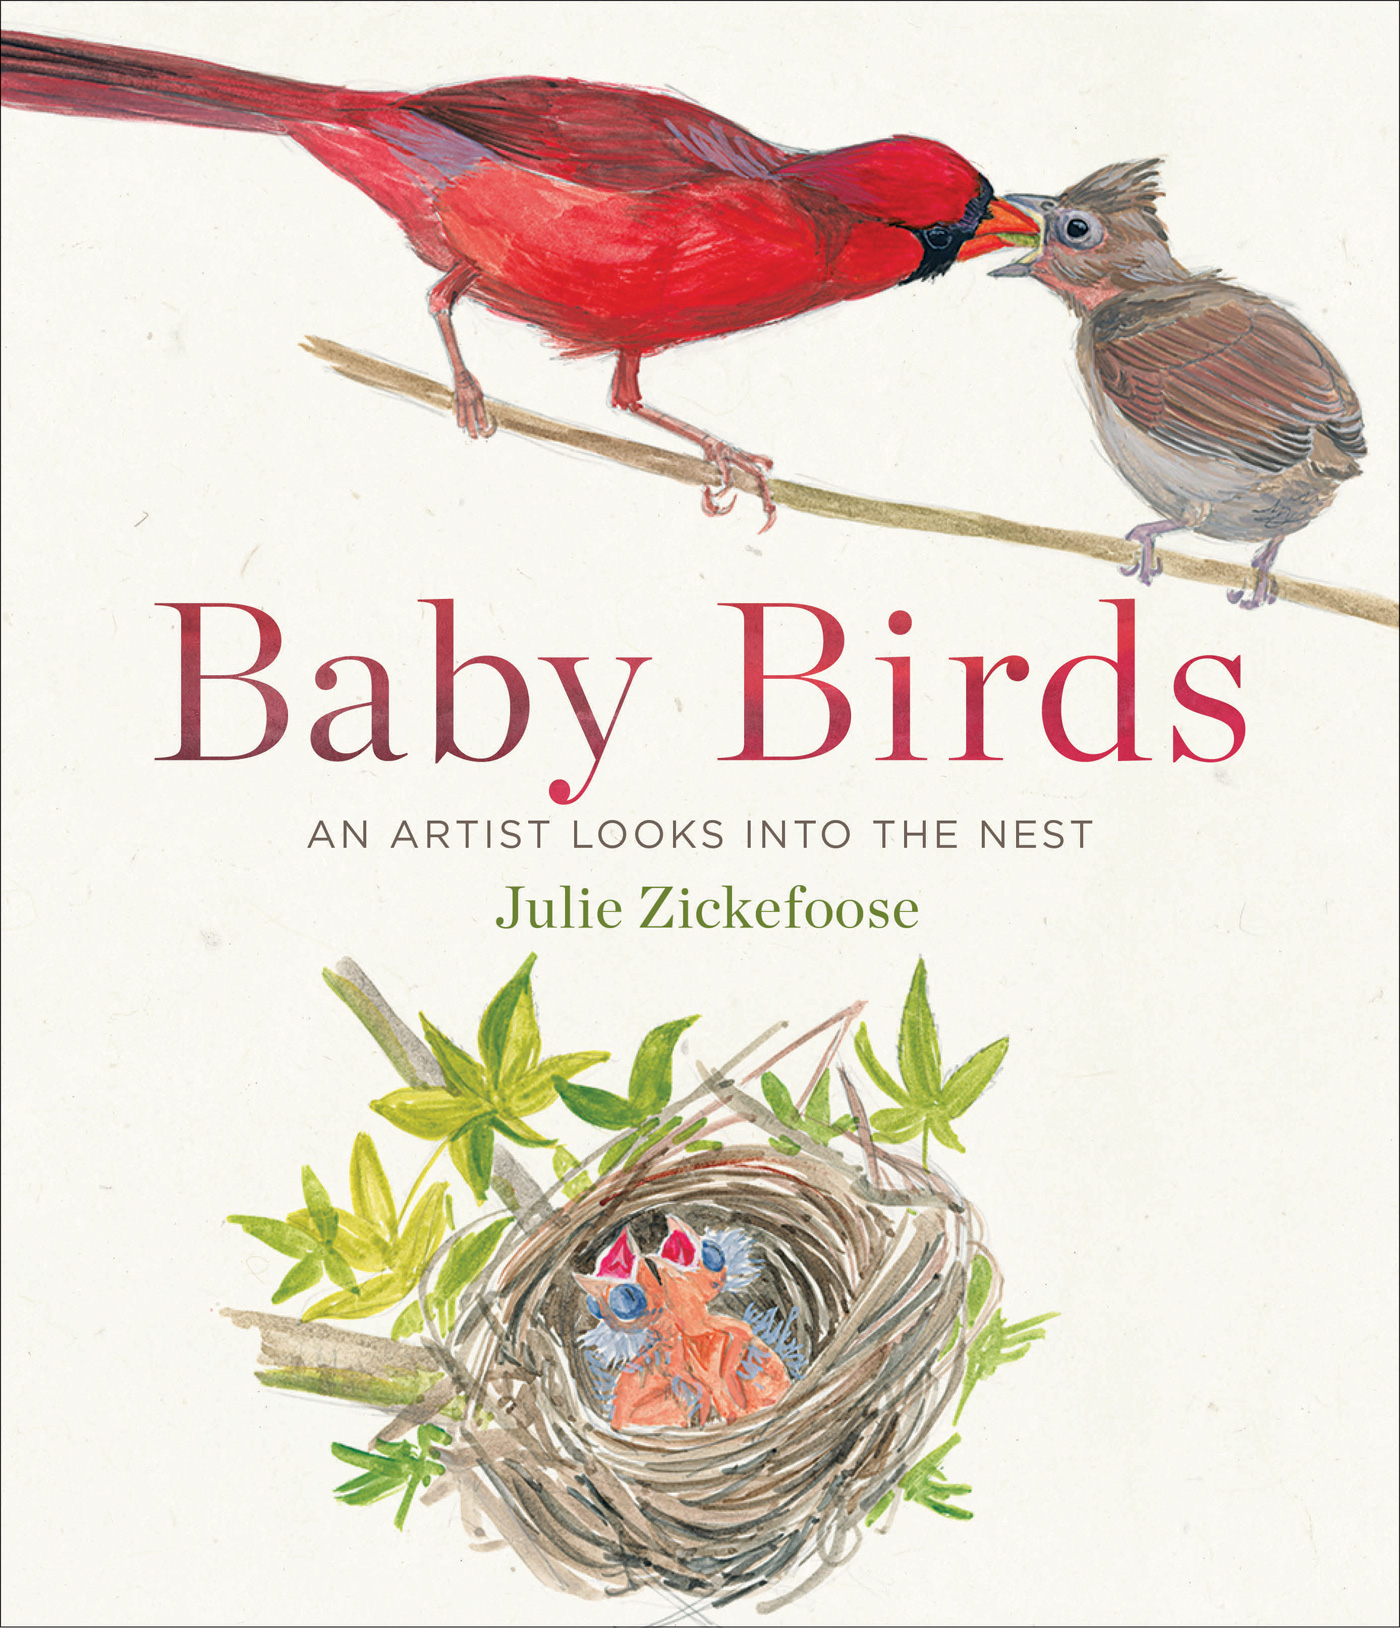 Book Review: Baby Birds: An Artist Looks Into the Nest by Julie Zickefoose